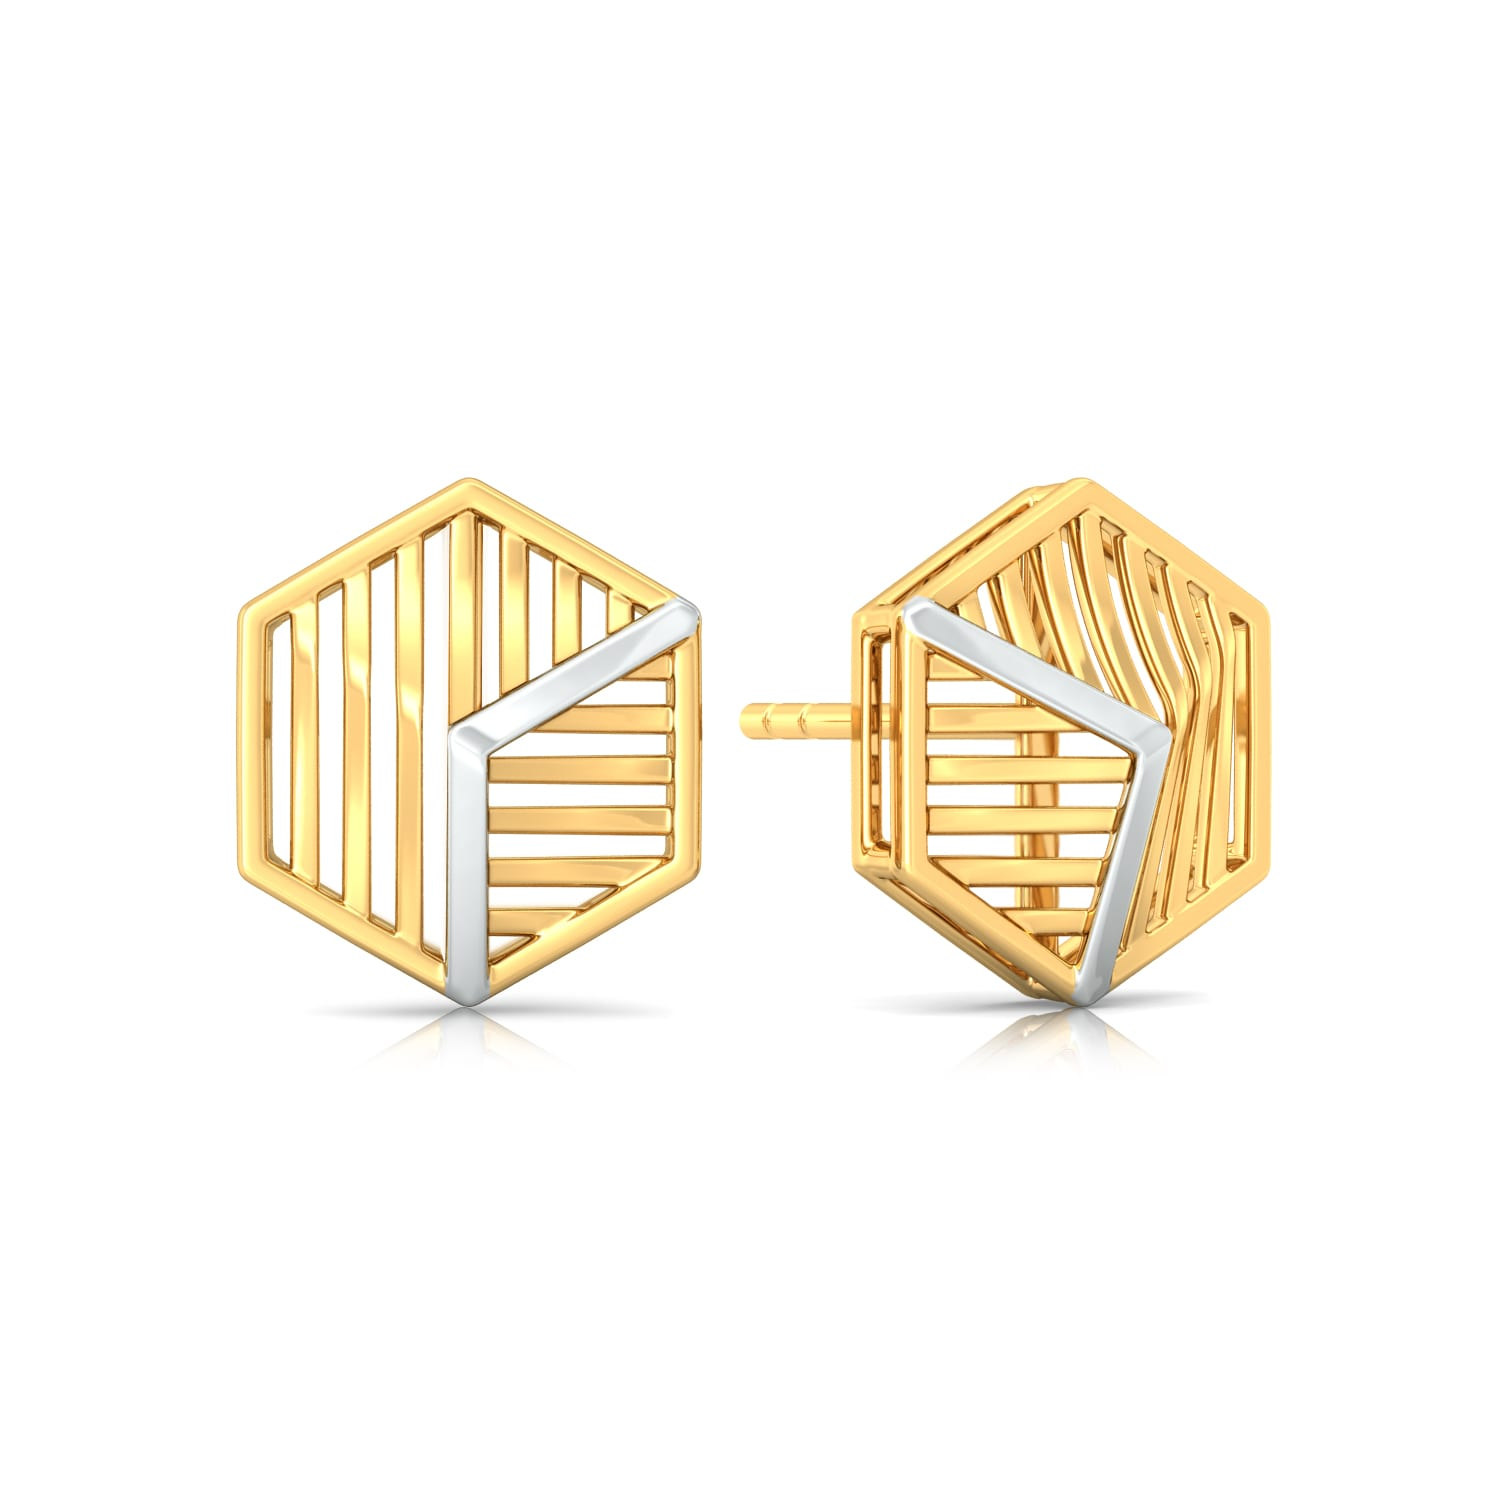 Hexa-Face Gold Earrings